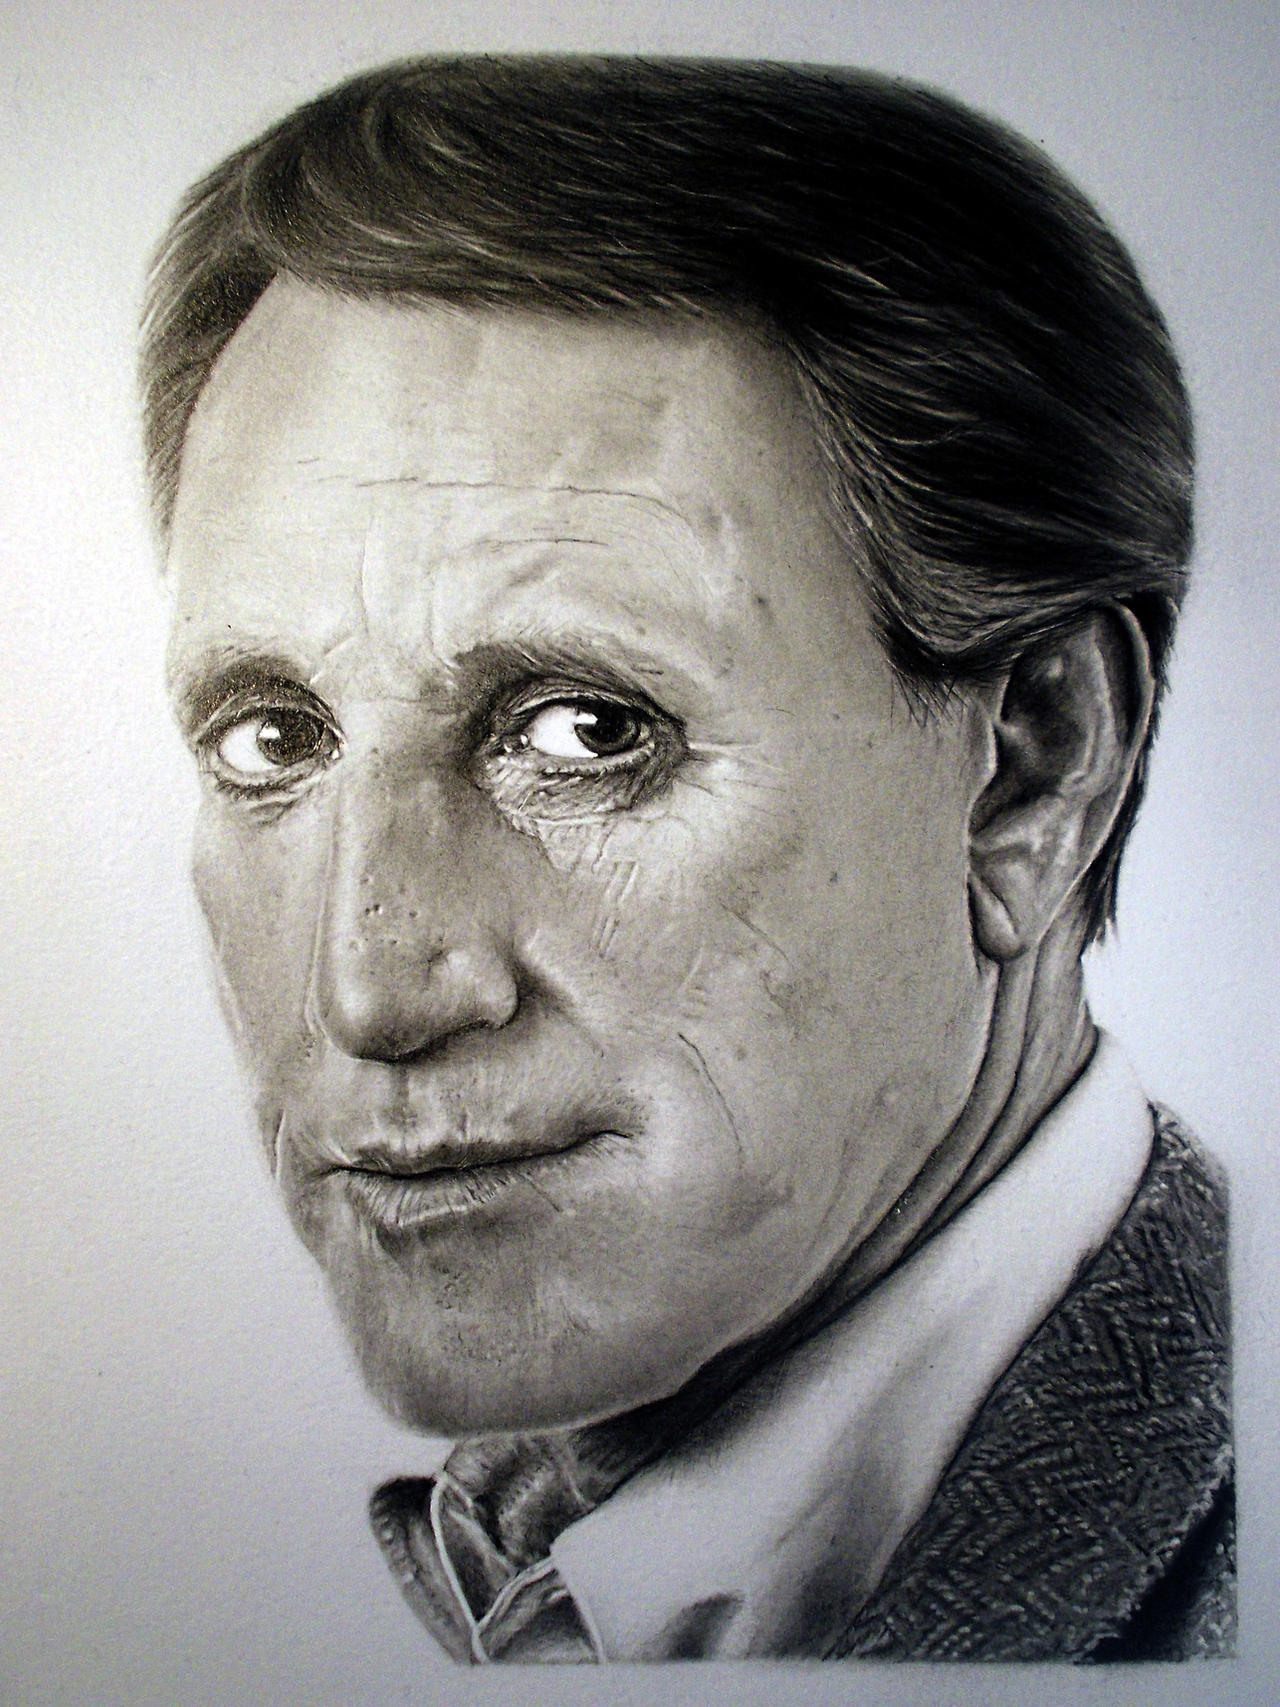 Roy Scheider by Elysiumshadow on DeviantArt